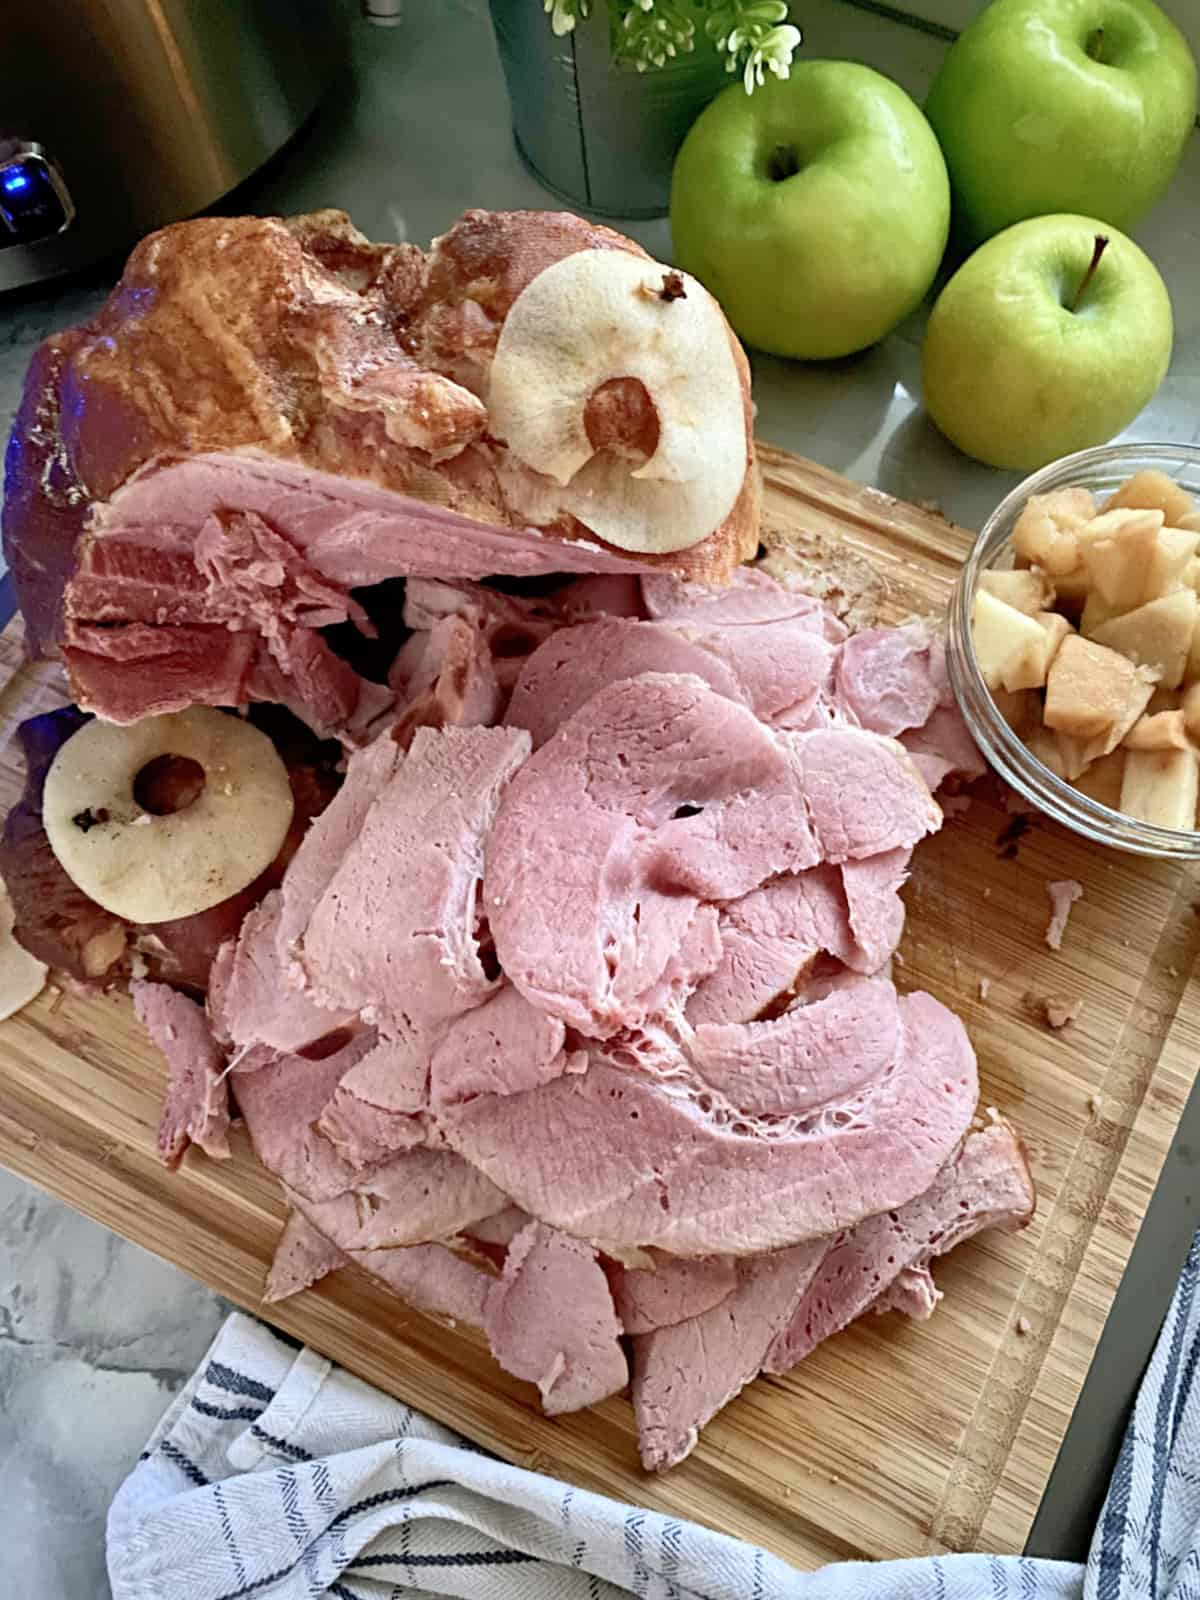 Top view of a wood cutting board with ham slices and a bowl of diced cooked apples next to it.